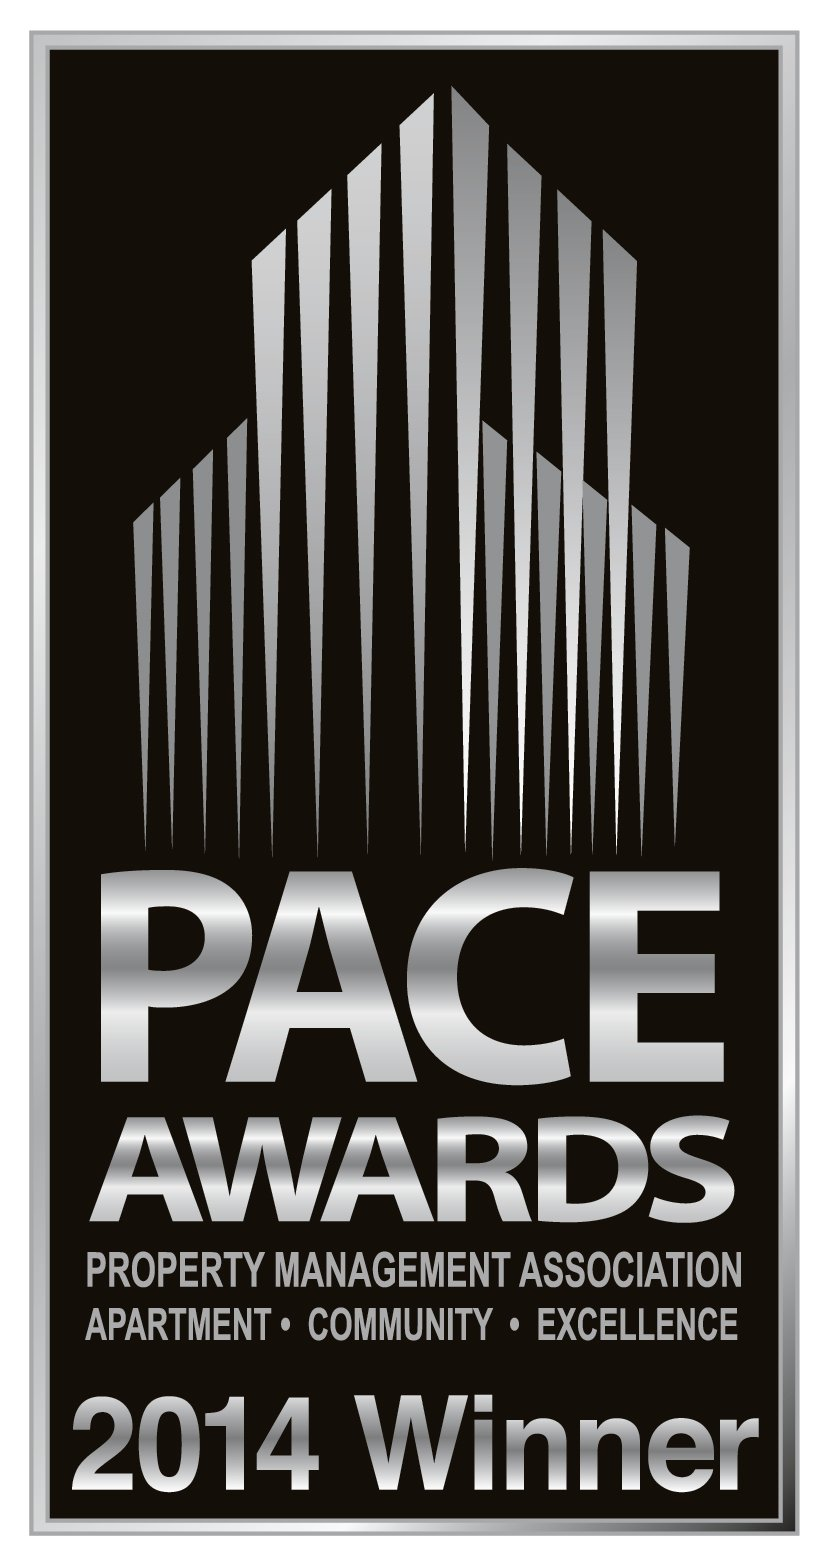 PACE Awards Logo 2014 Winner